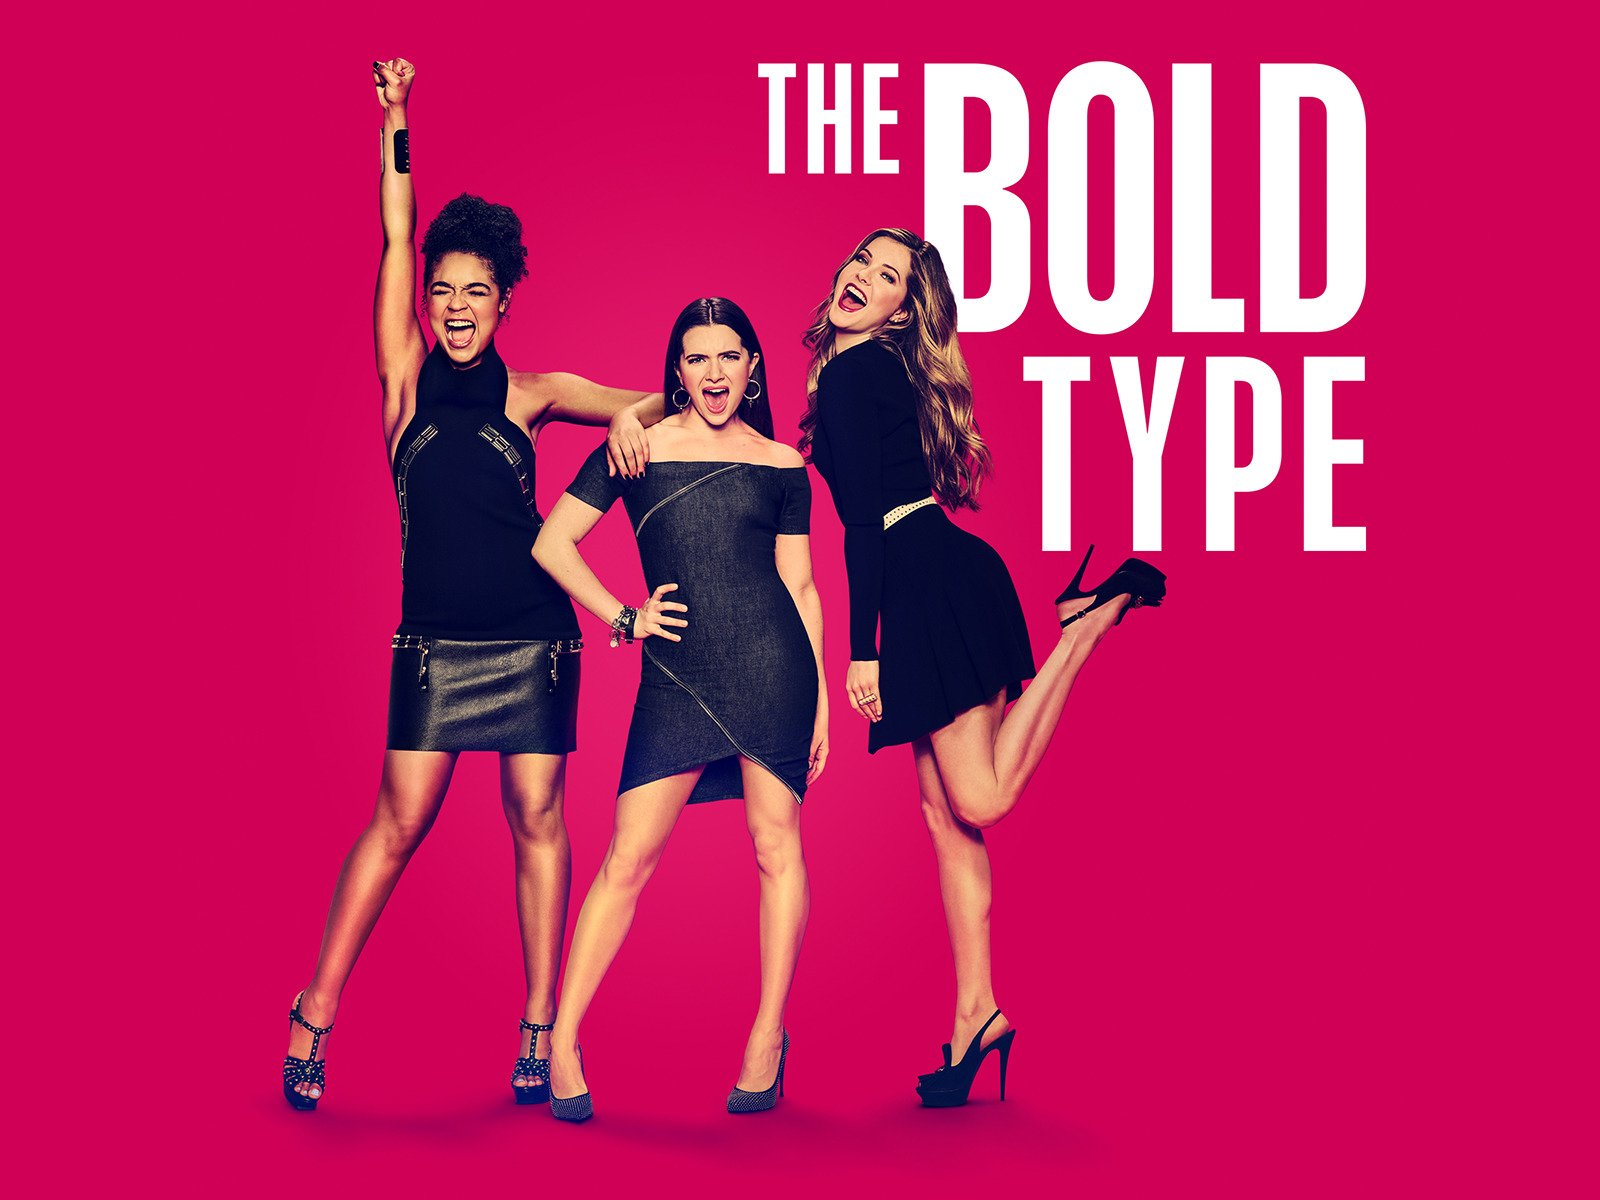 The Bolt Type